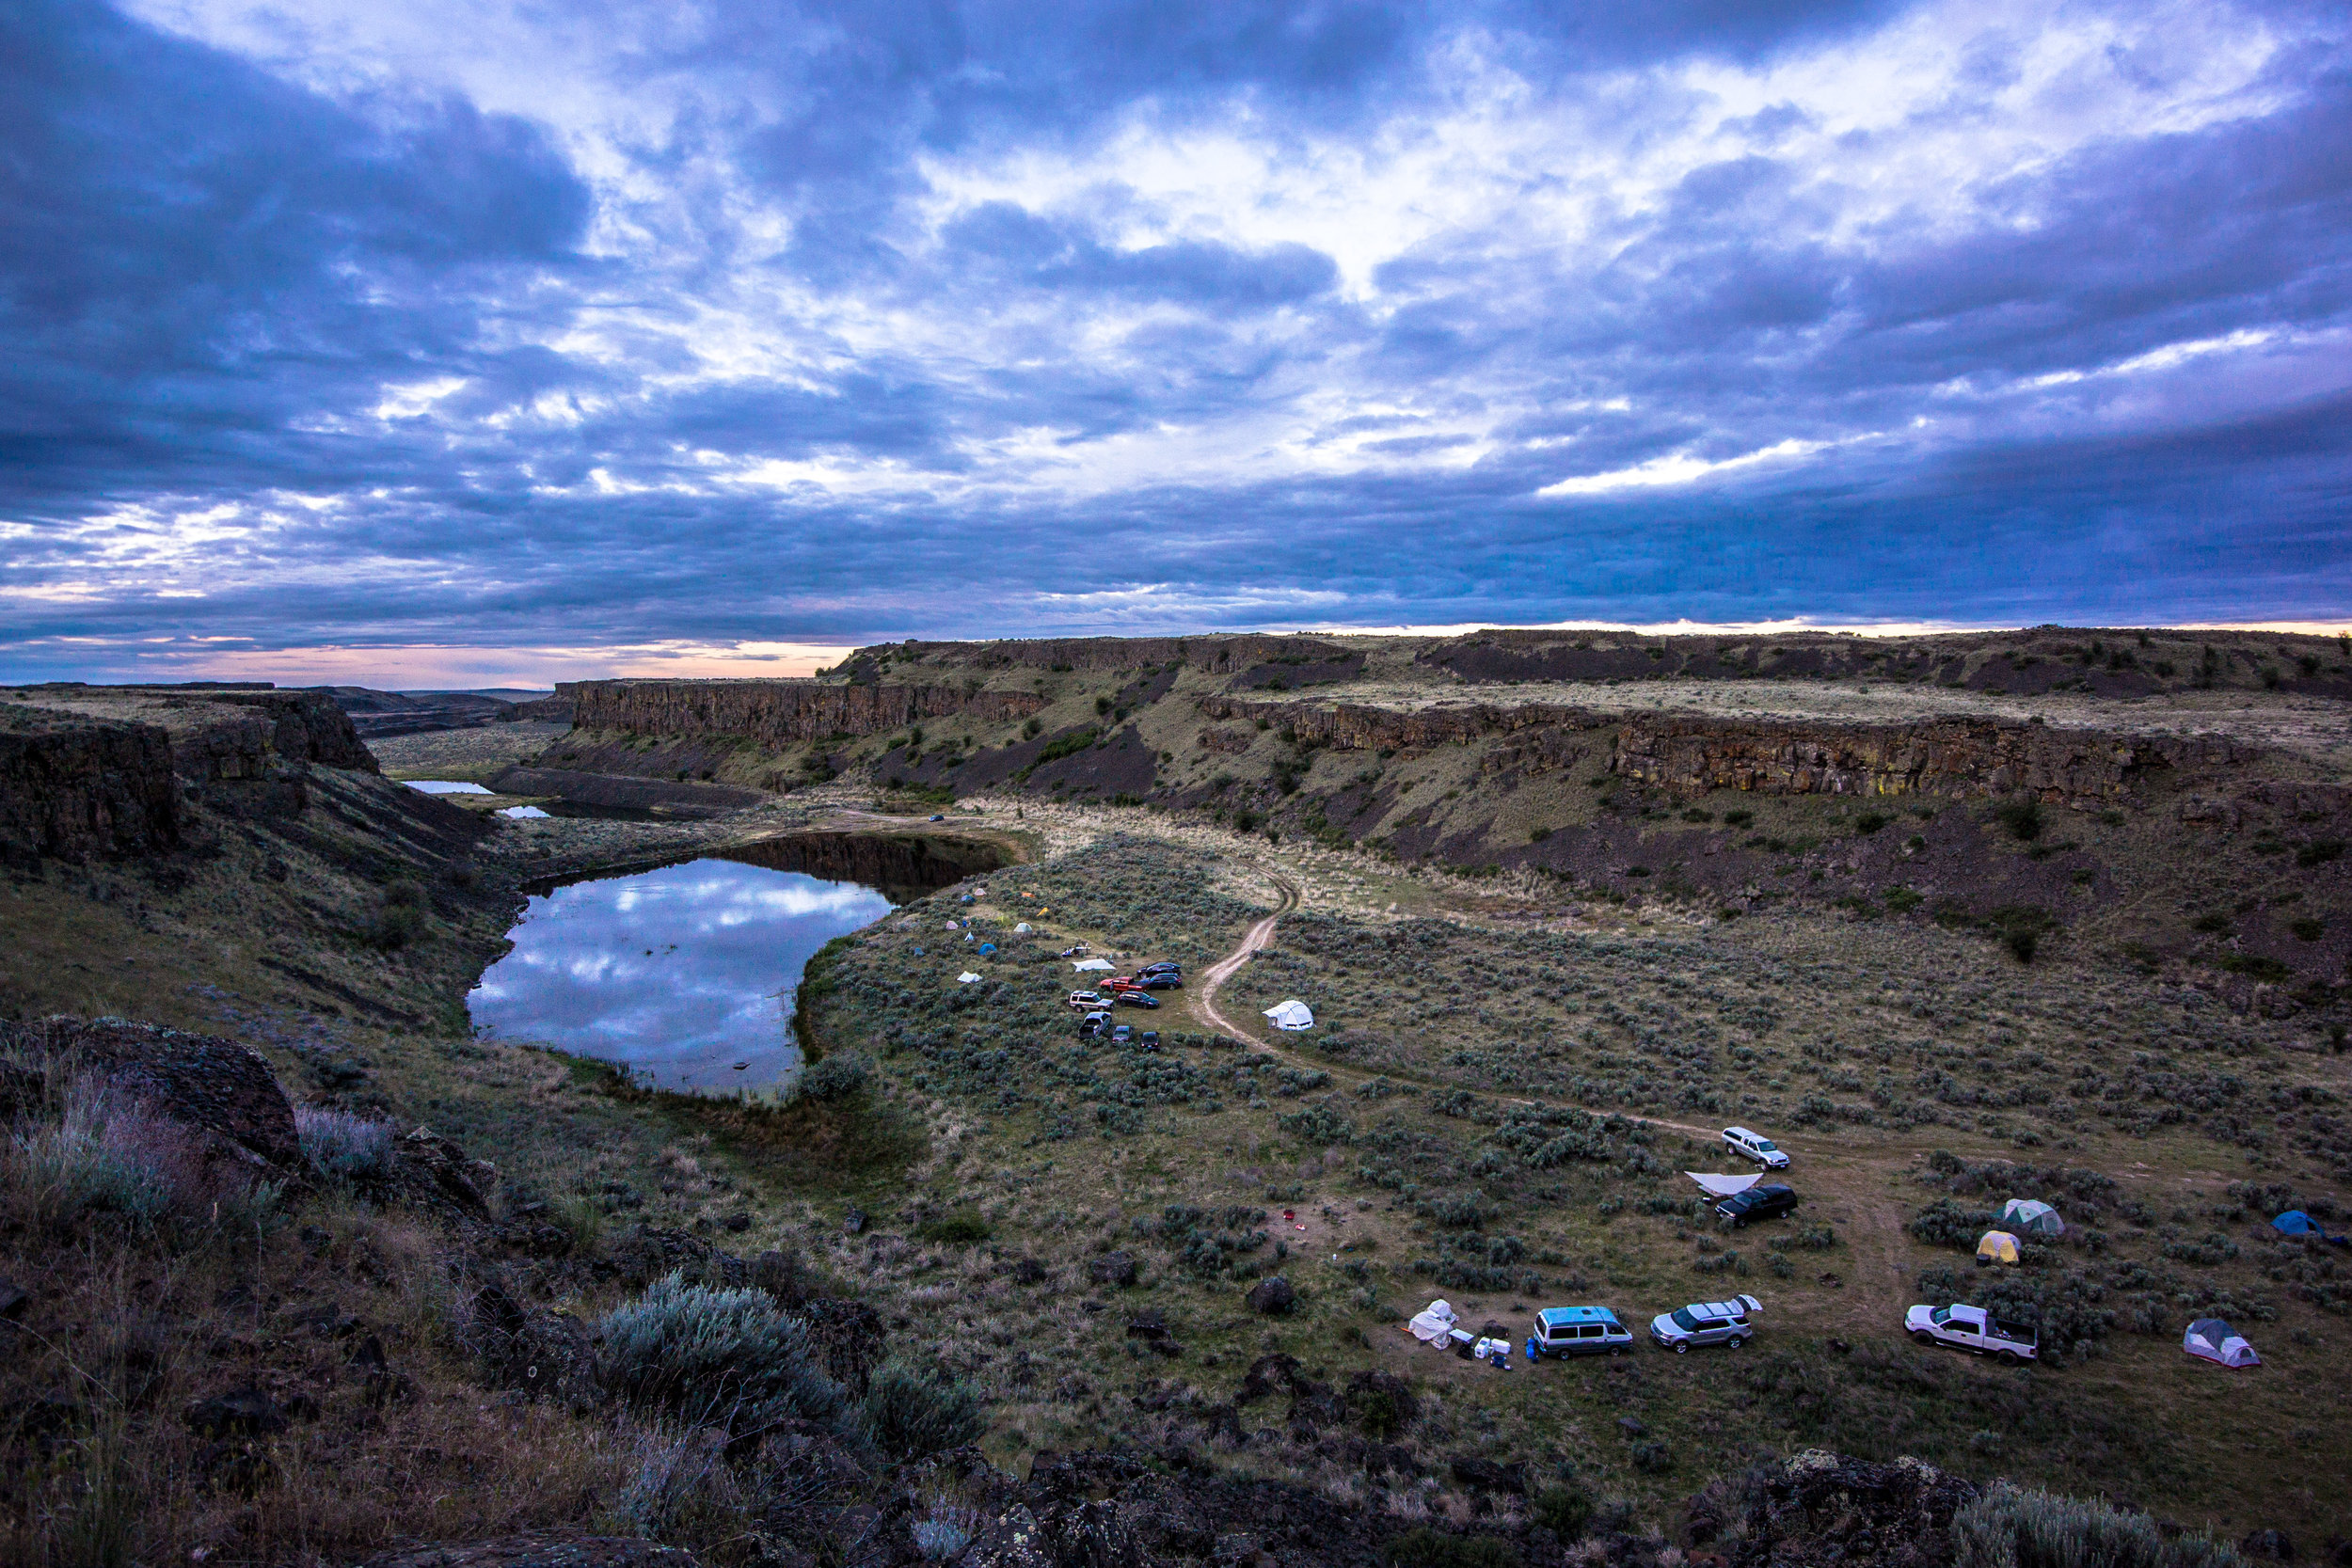 2018 - View of base camp in Eastern Washington